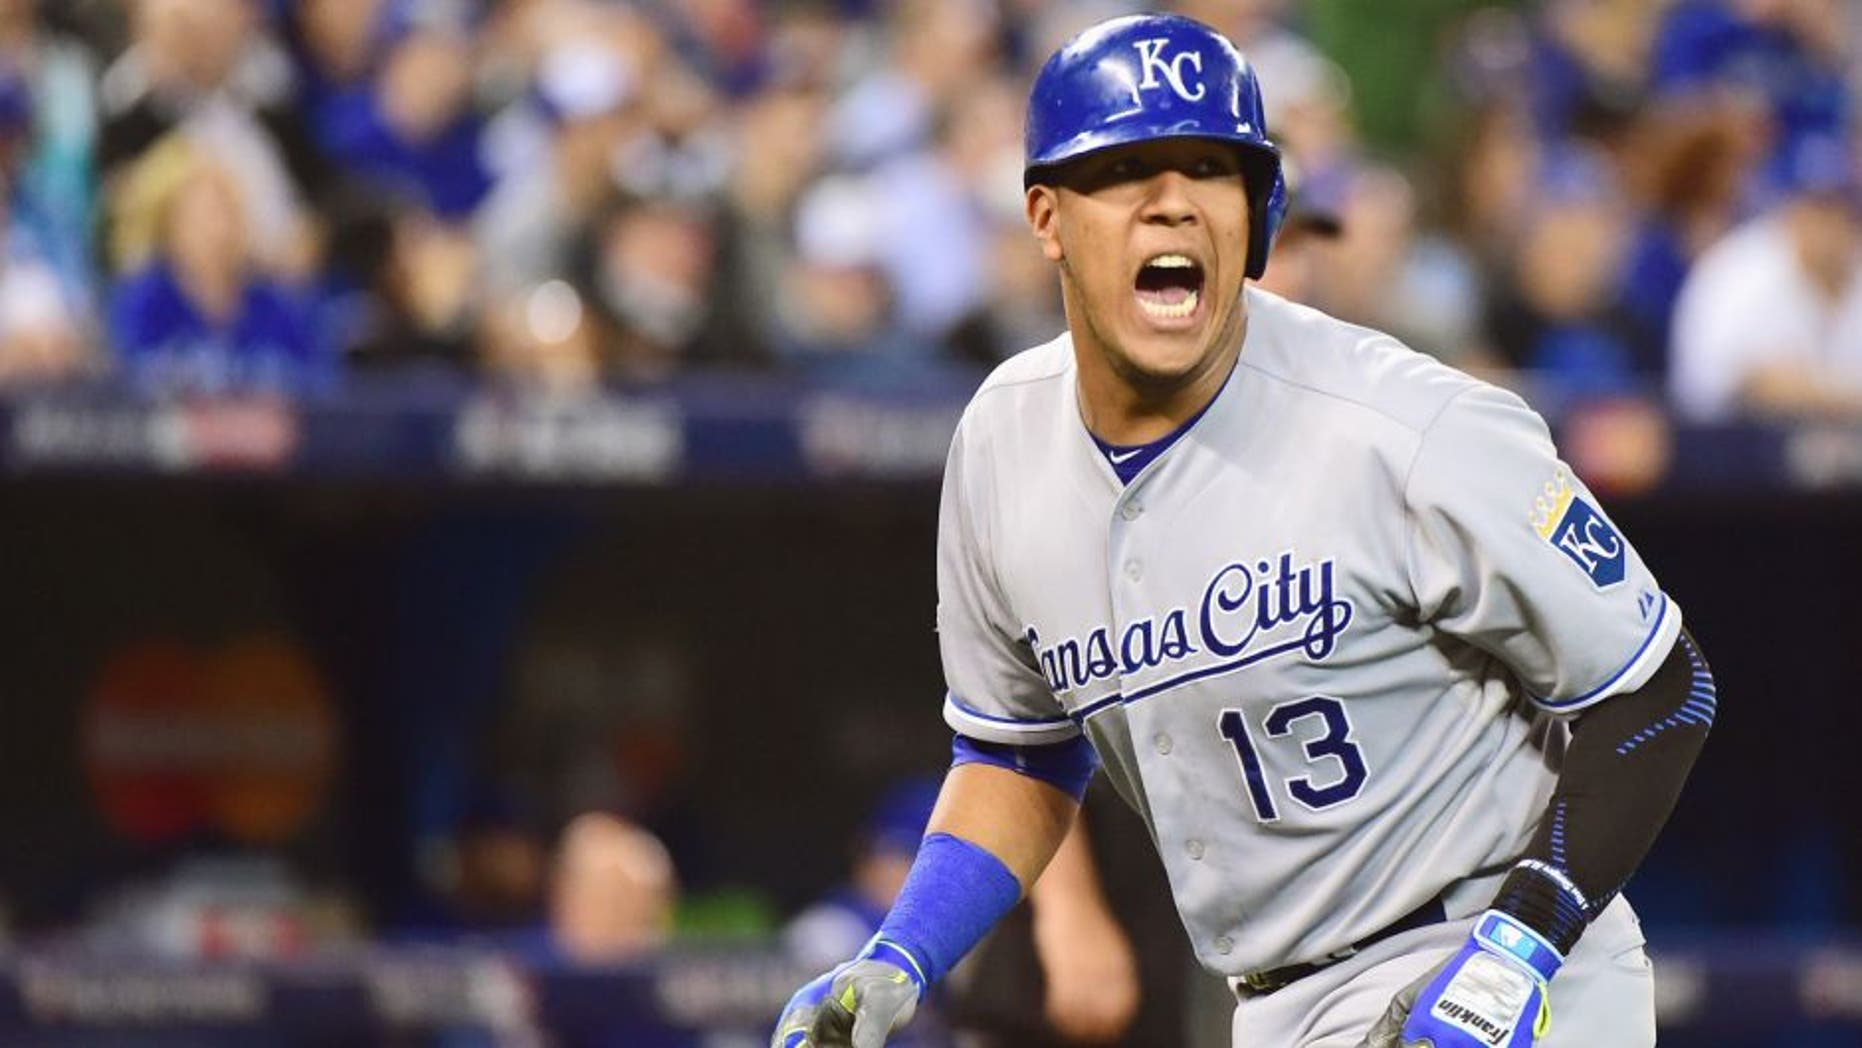 Salvador Perez #13 of the Kansas City Royals reacts after scoring a run in the seventh inning against the Toronto Blue Jays during game four of the American League Championship Series at Rogers Centre on October 20, 2015 in Toronto, Canada. (Photo by Harry How/Getty Images)